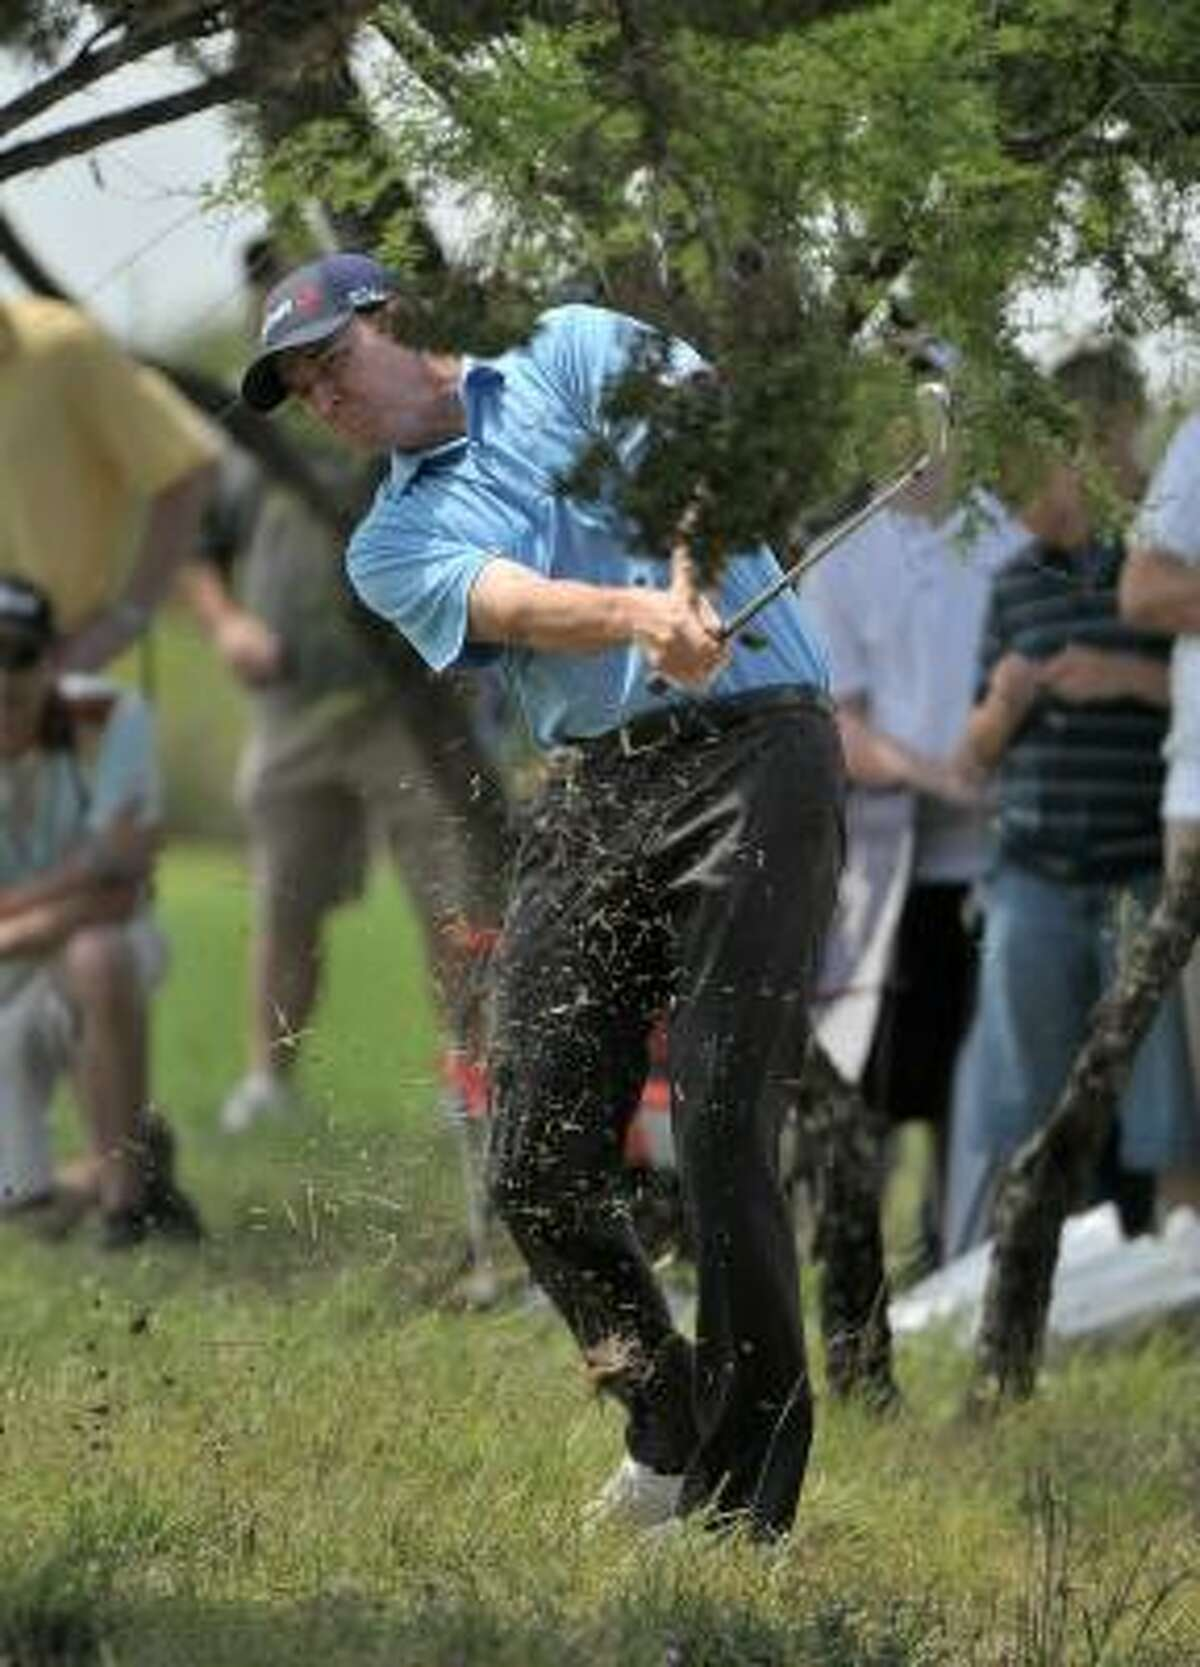 Jimmy Walker hits his second shot out of the rough on the 15th hole.